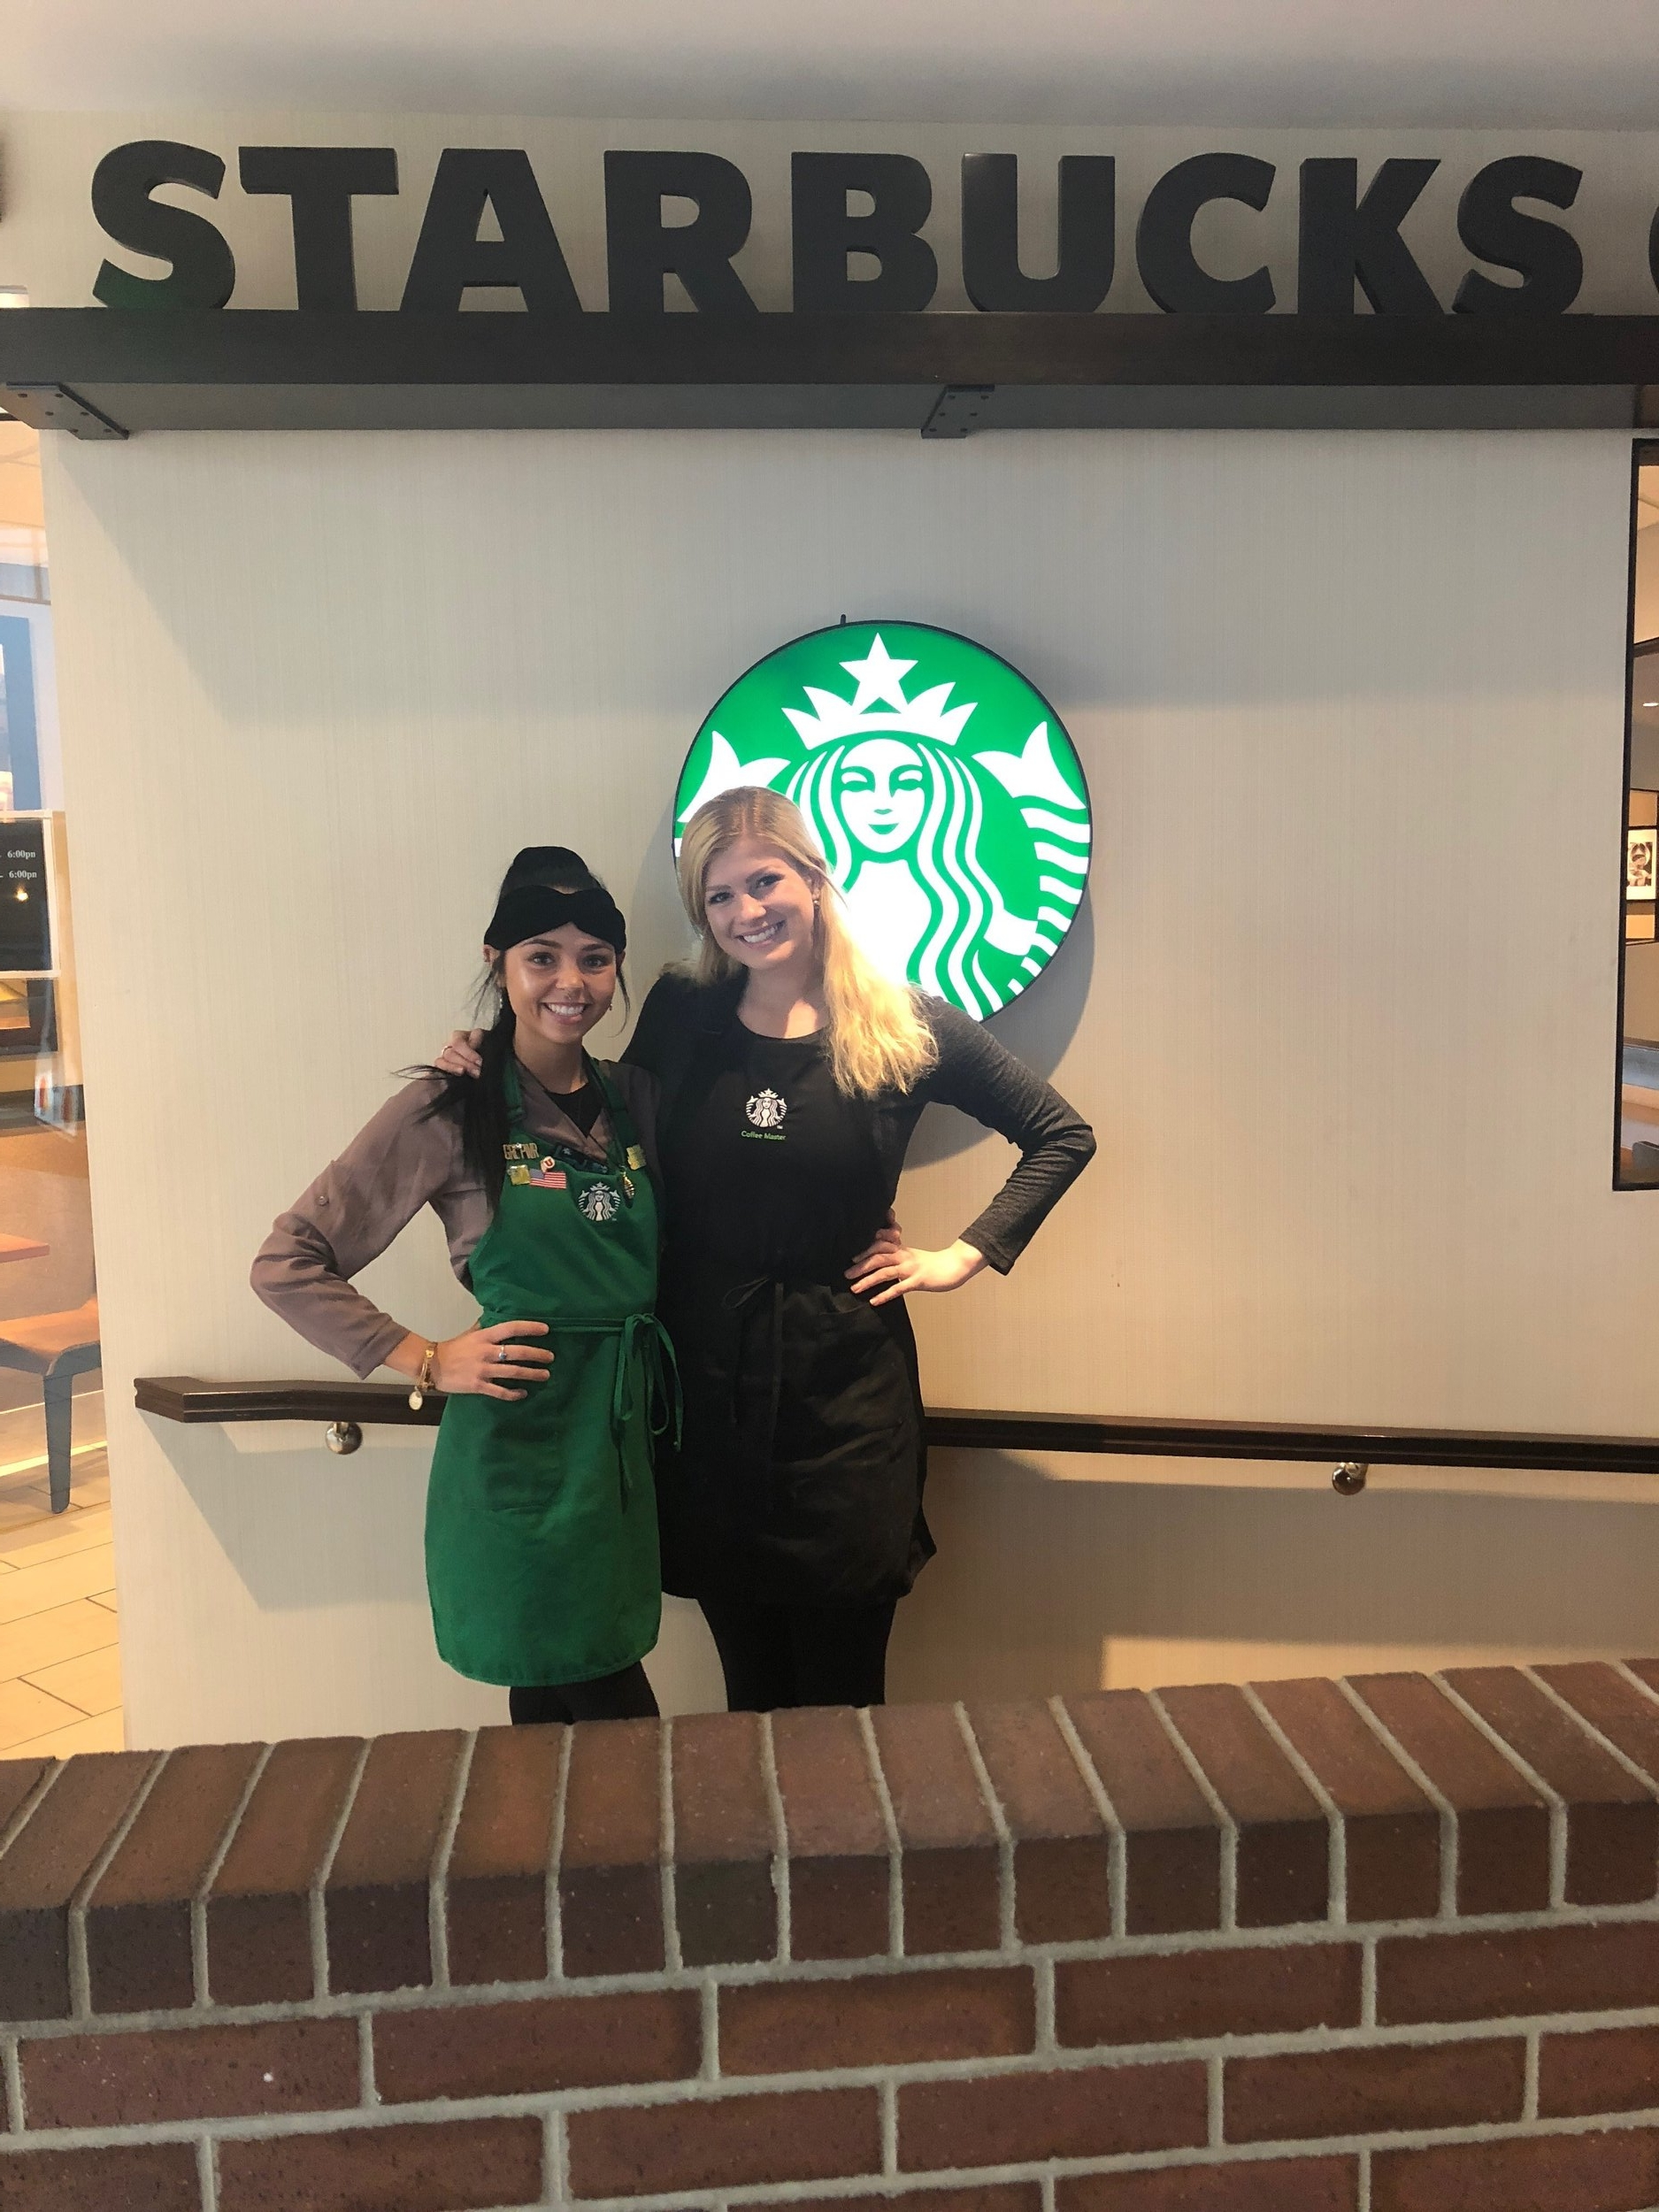 Starbucks manager Cait congratulating London on her promotion.